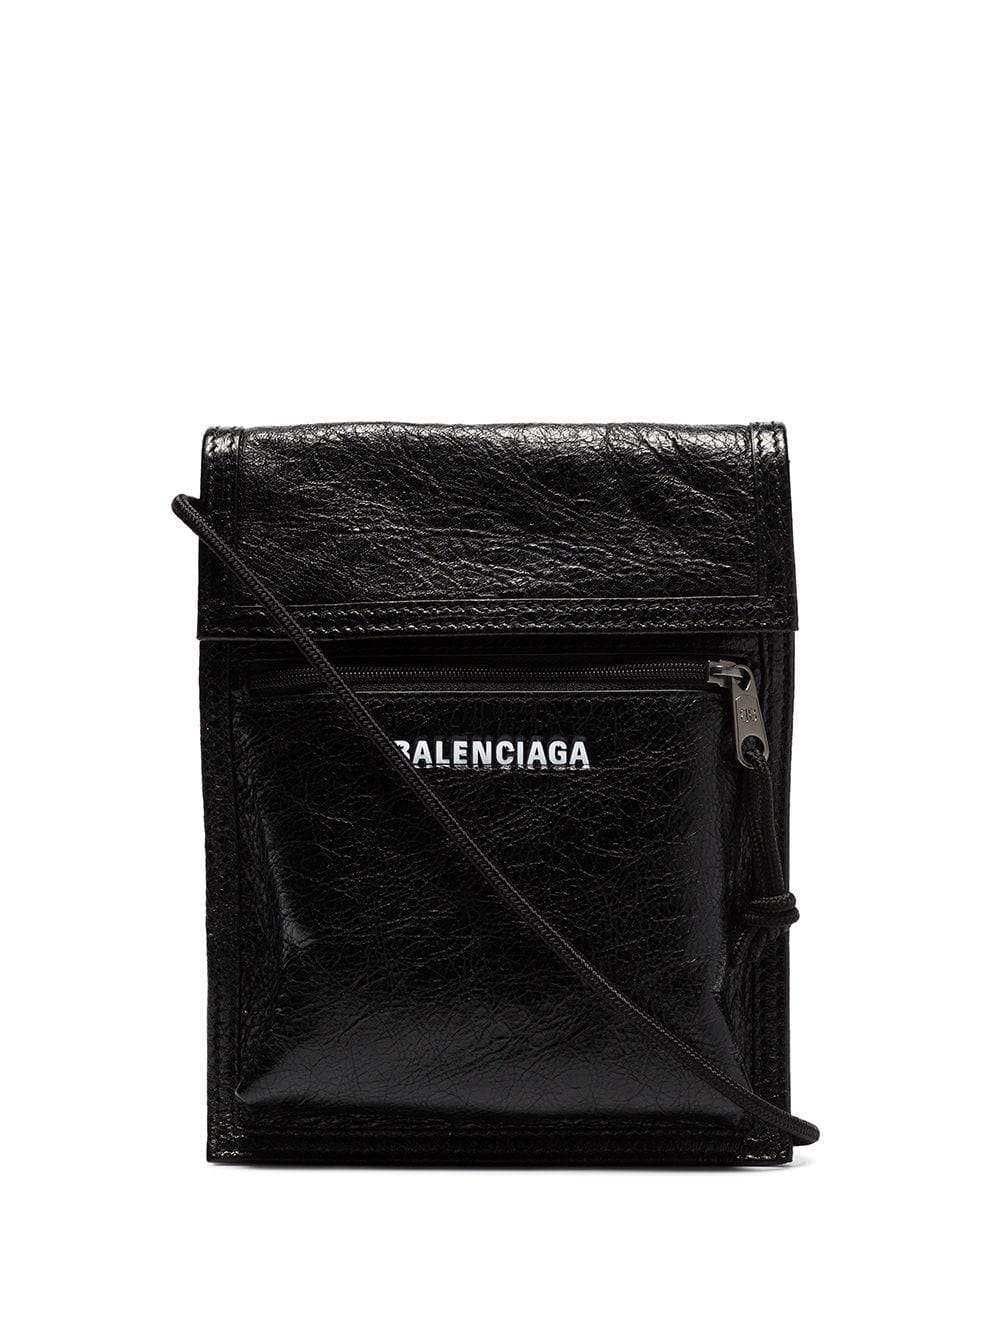 BALENCIAGA explorer cracked leather messenger bag black